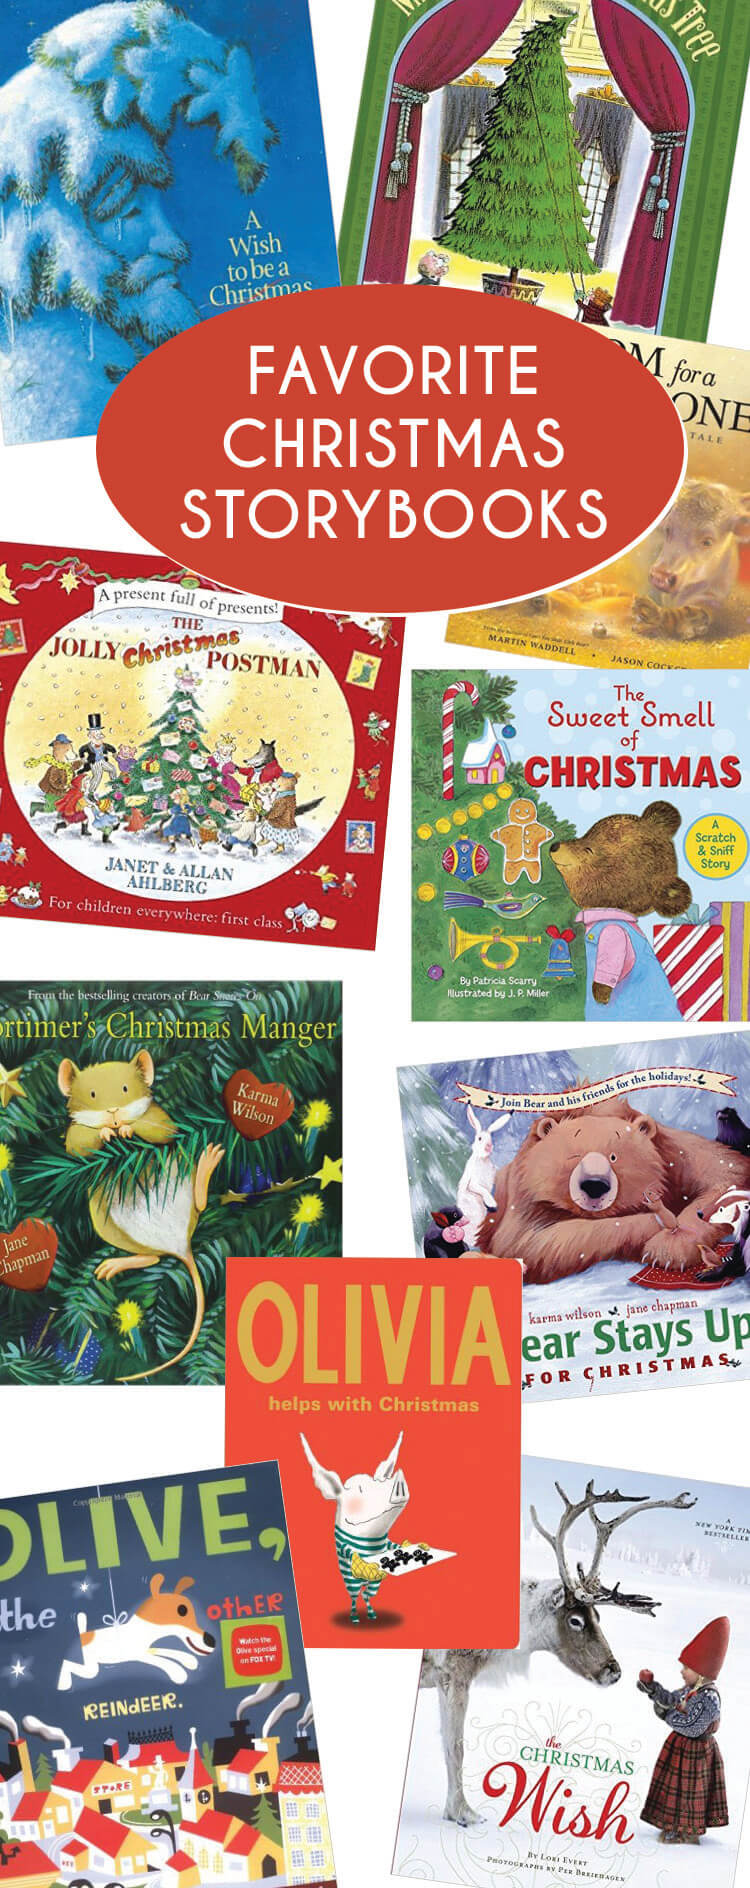 Our favorite Christmas storybooks - perfect for planning out your Christmas book advent